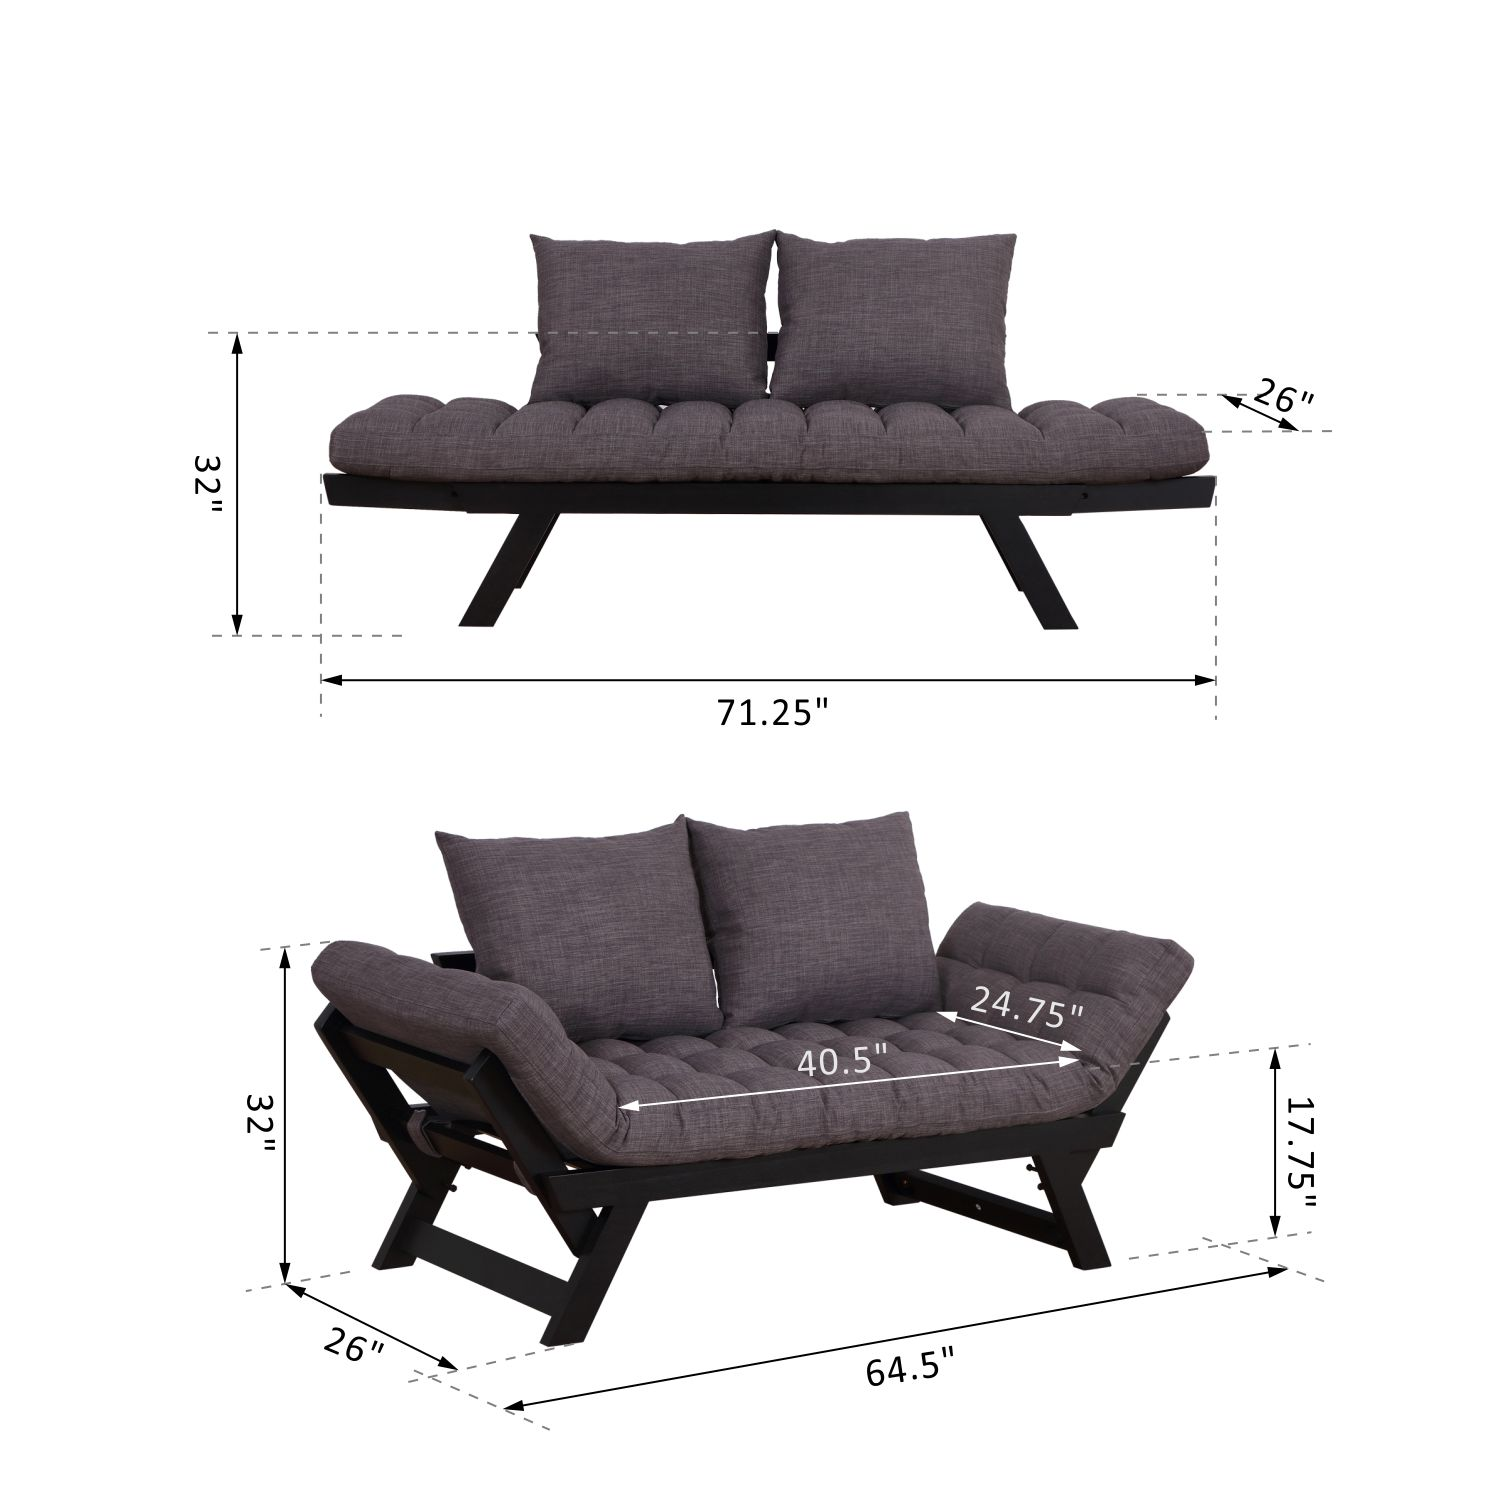 Convertible-Sofa-Bed-Sleeper-Couch-Chaise-Lounge-Chair-Adjustable-Padded-Pillow thumbnail 21